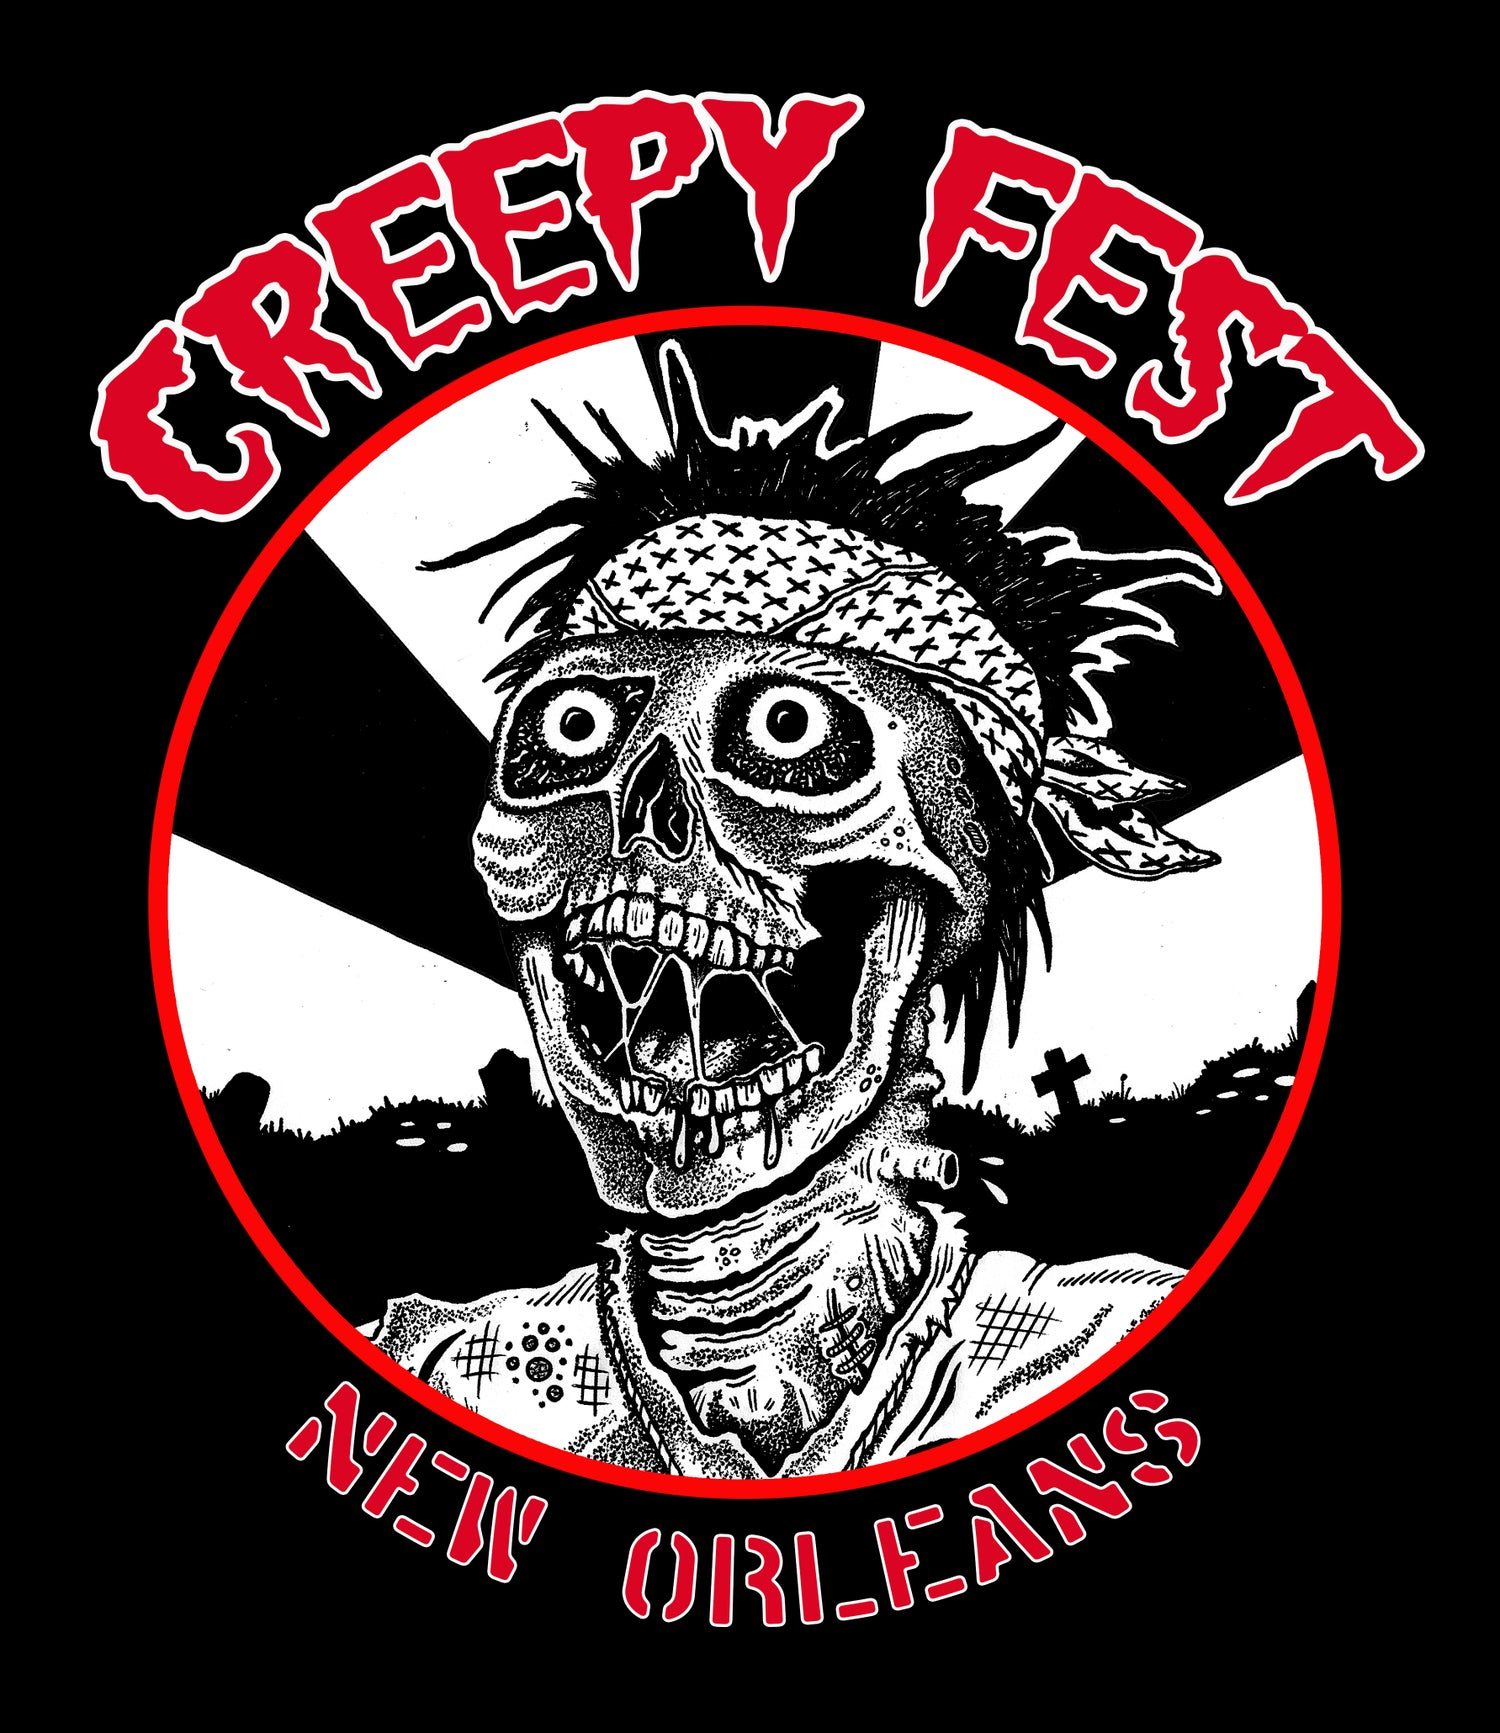 Image of Creepy Fest Circle Logo Shirt